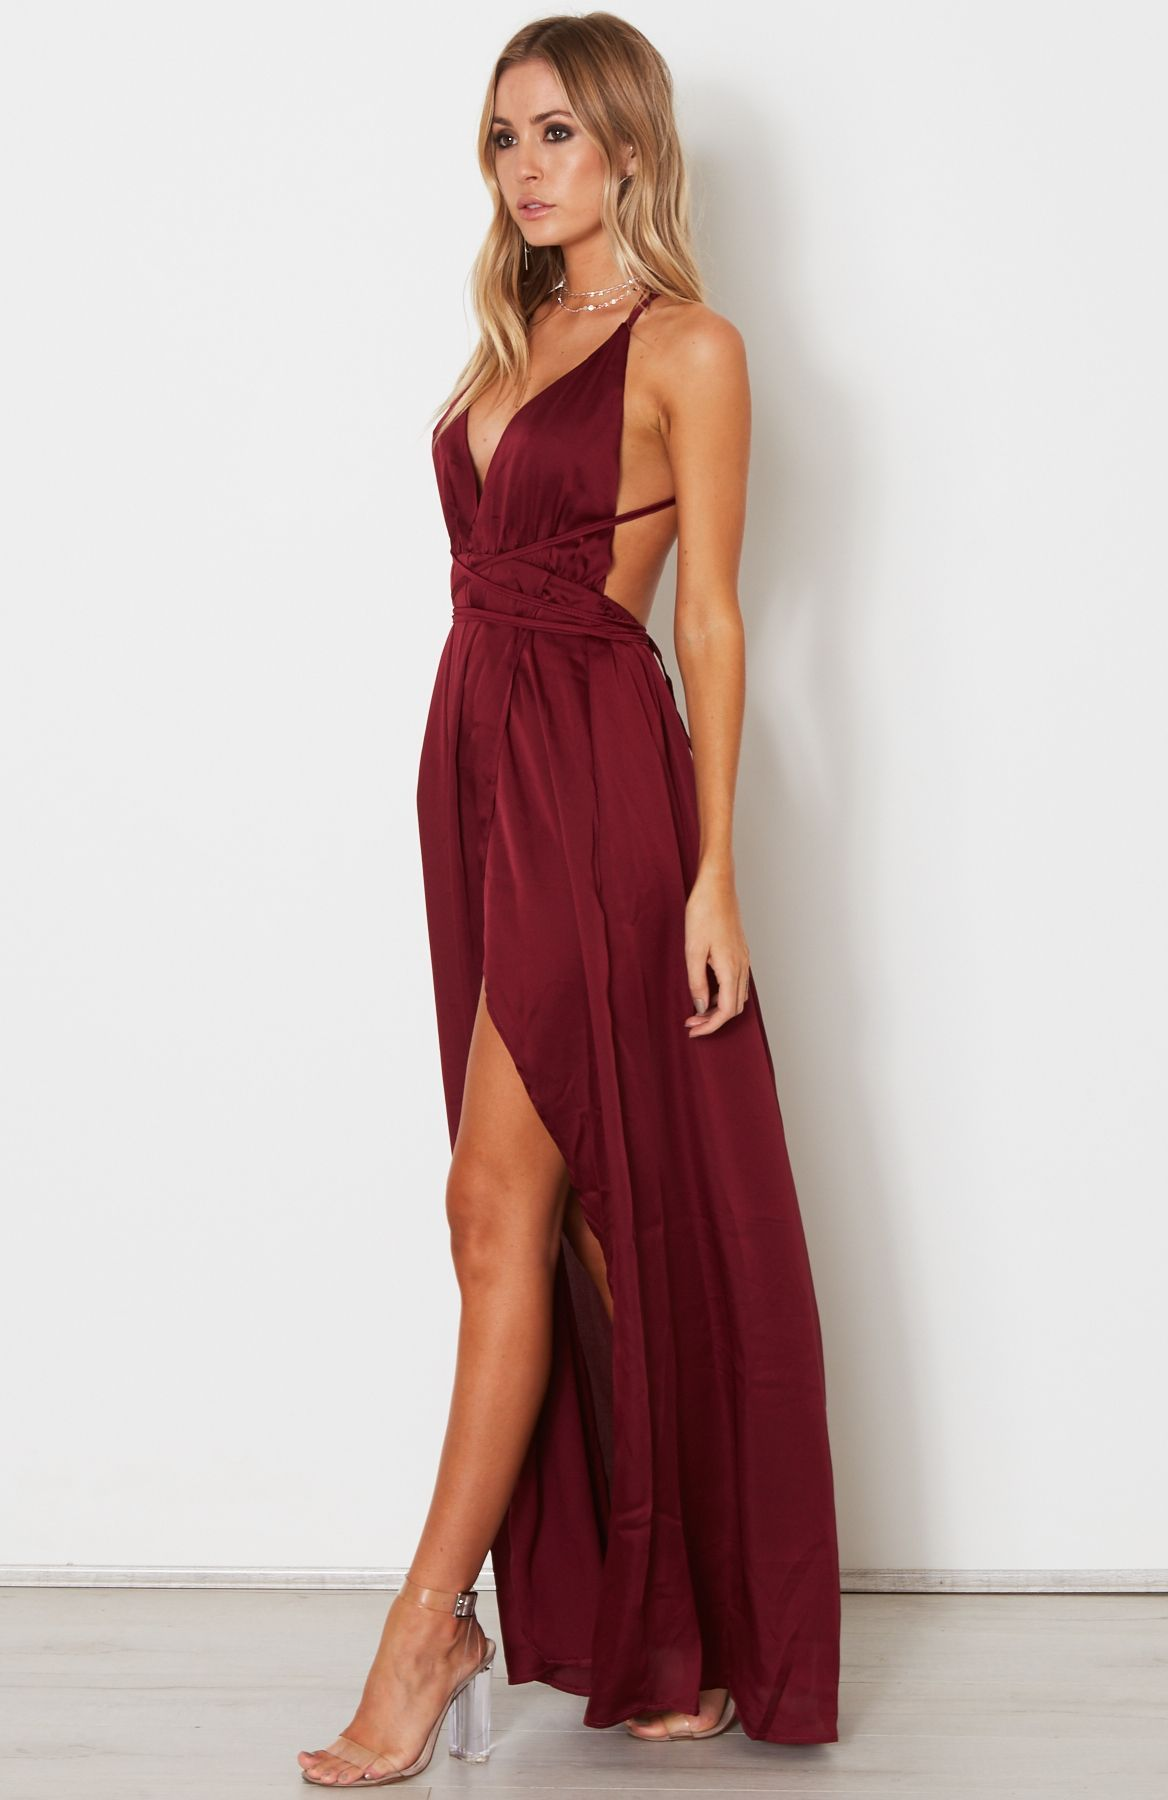 84e248bae4784 Halter Neck Straps Deep V Neck Burgundy Prom Dresses With High Side ...